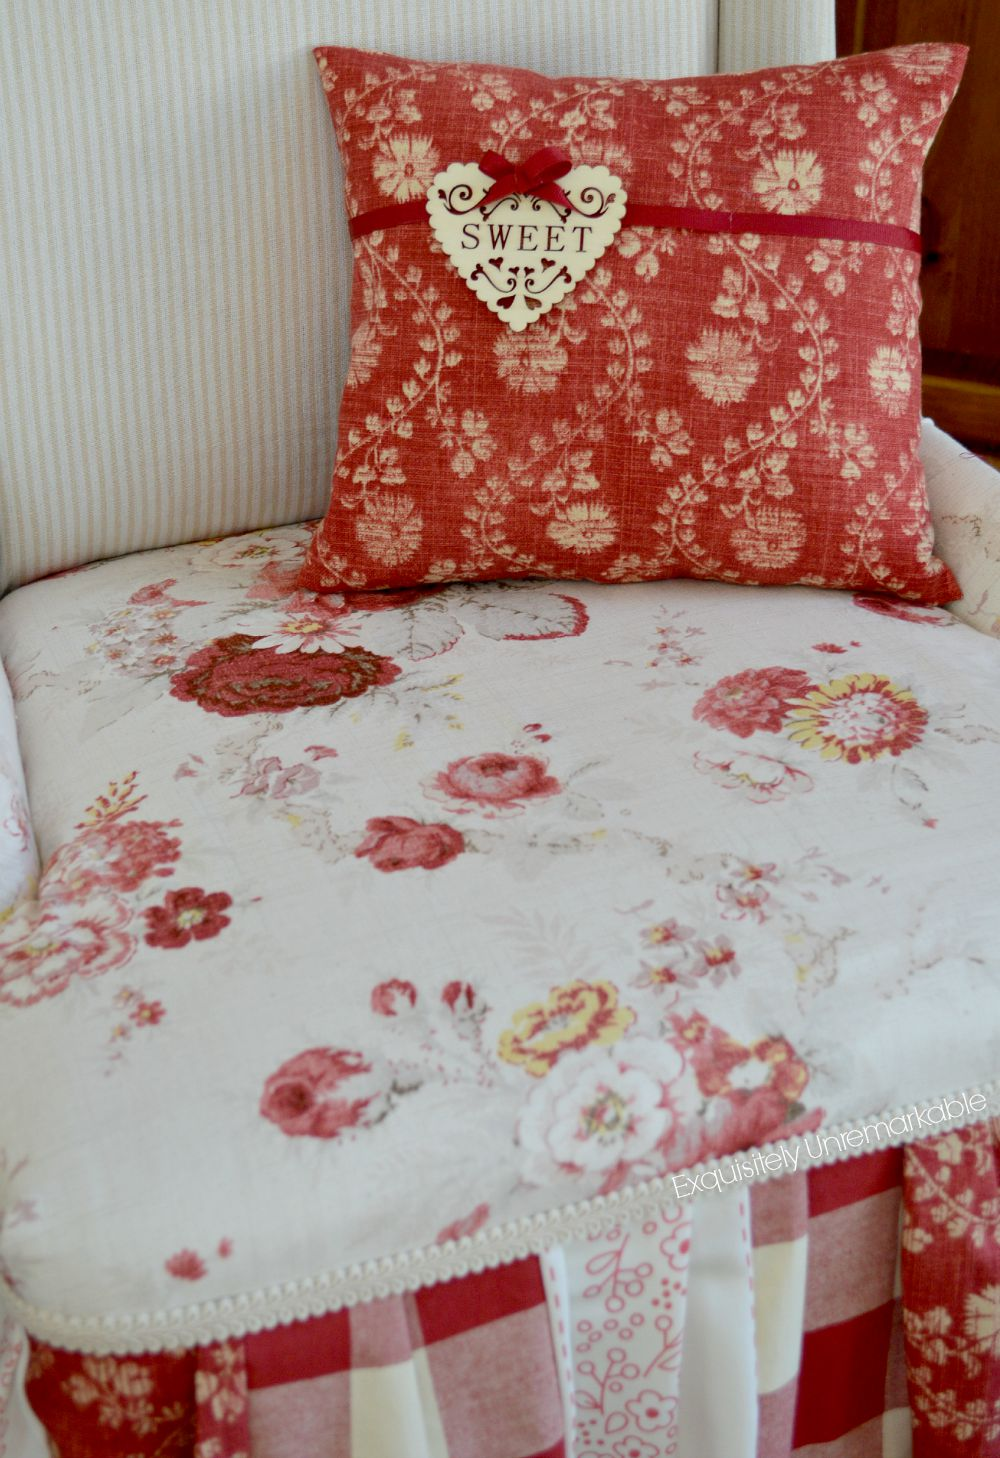 Heart embellished pillow